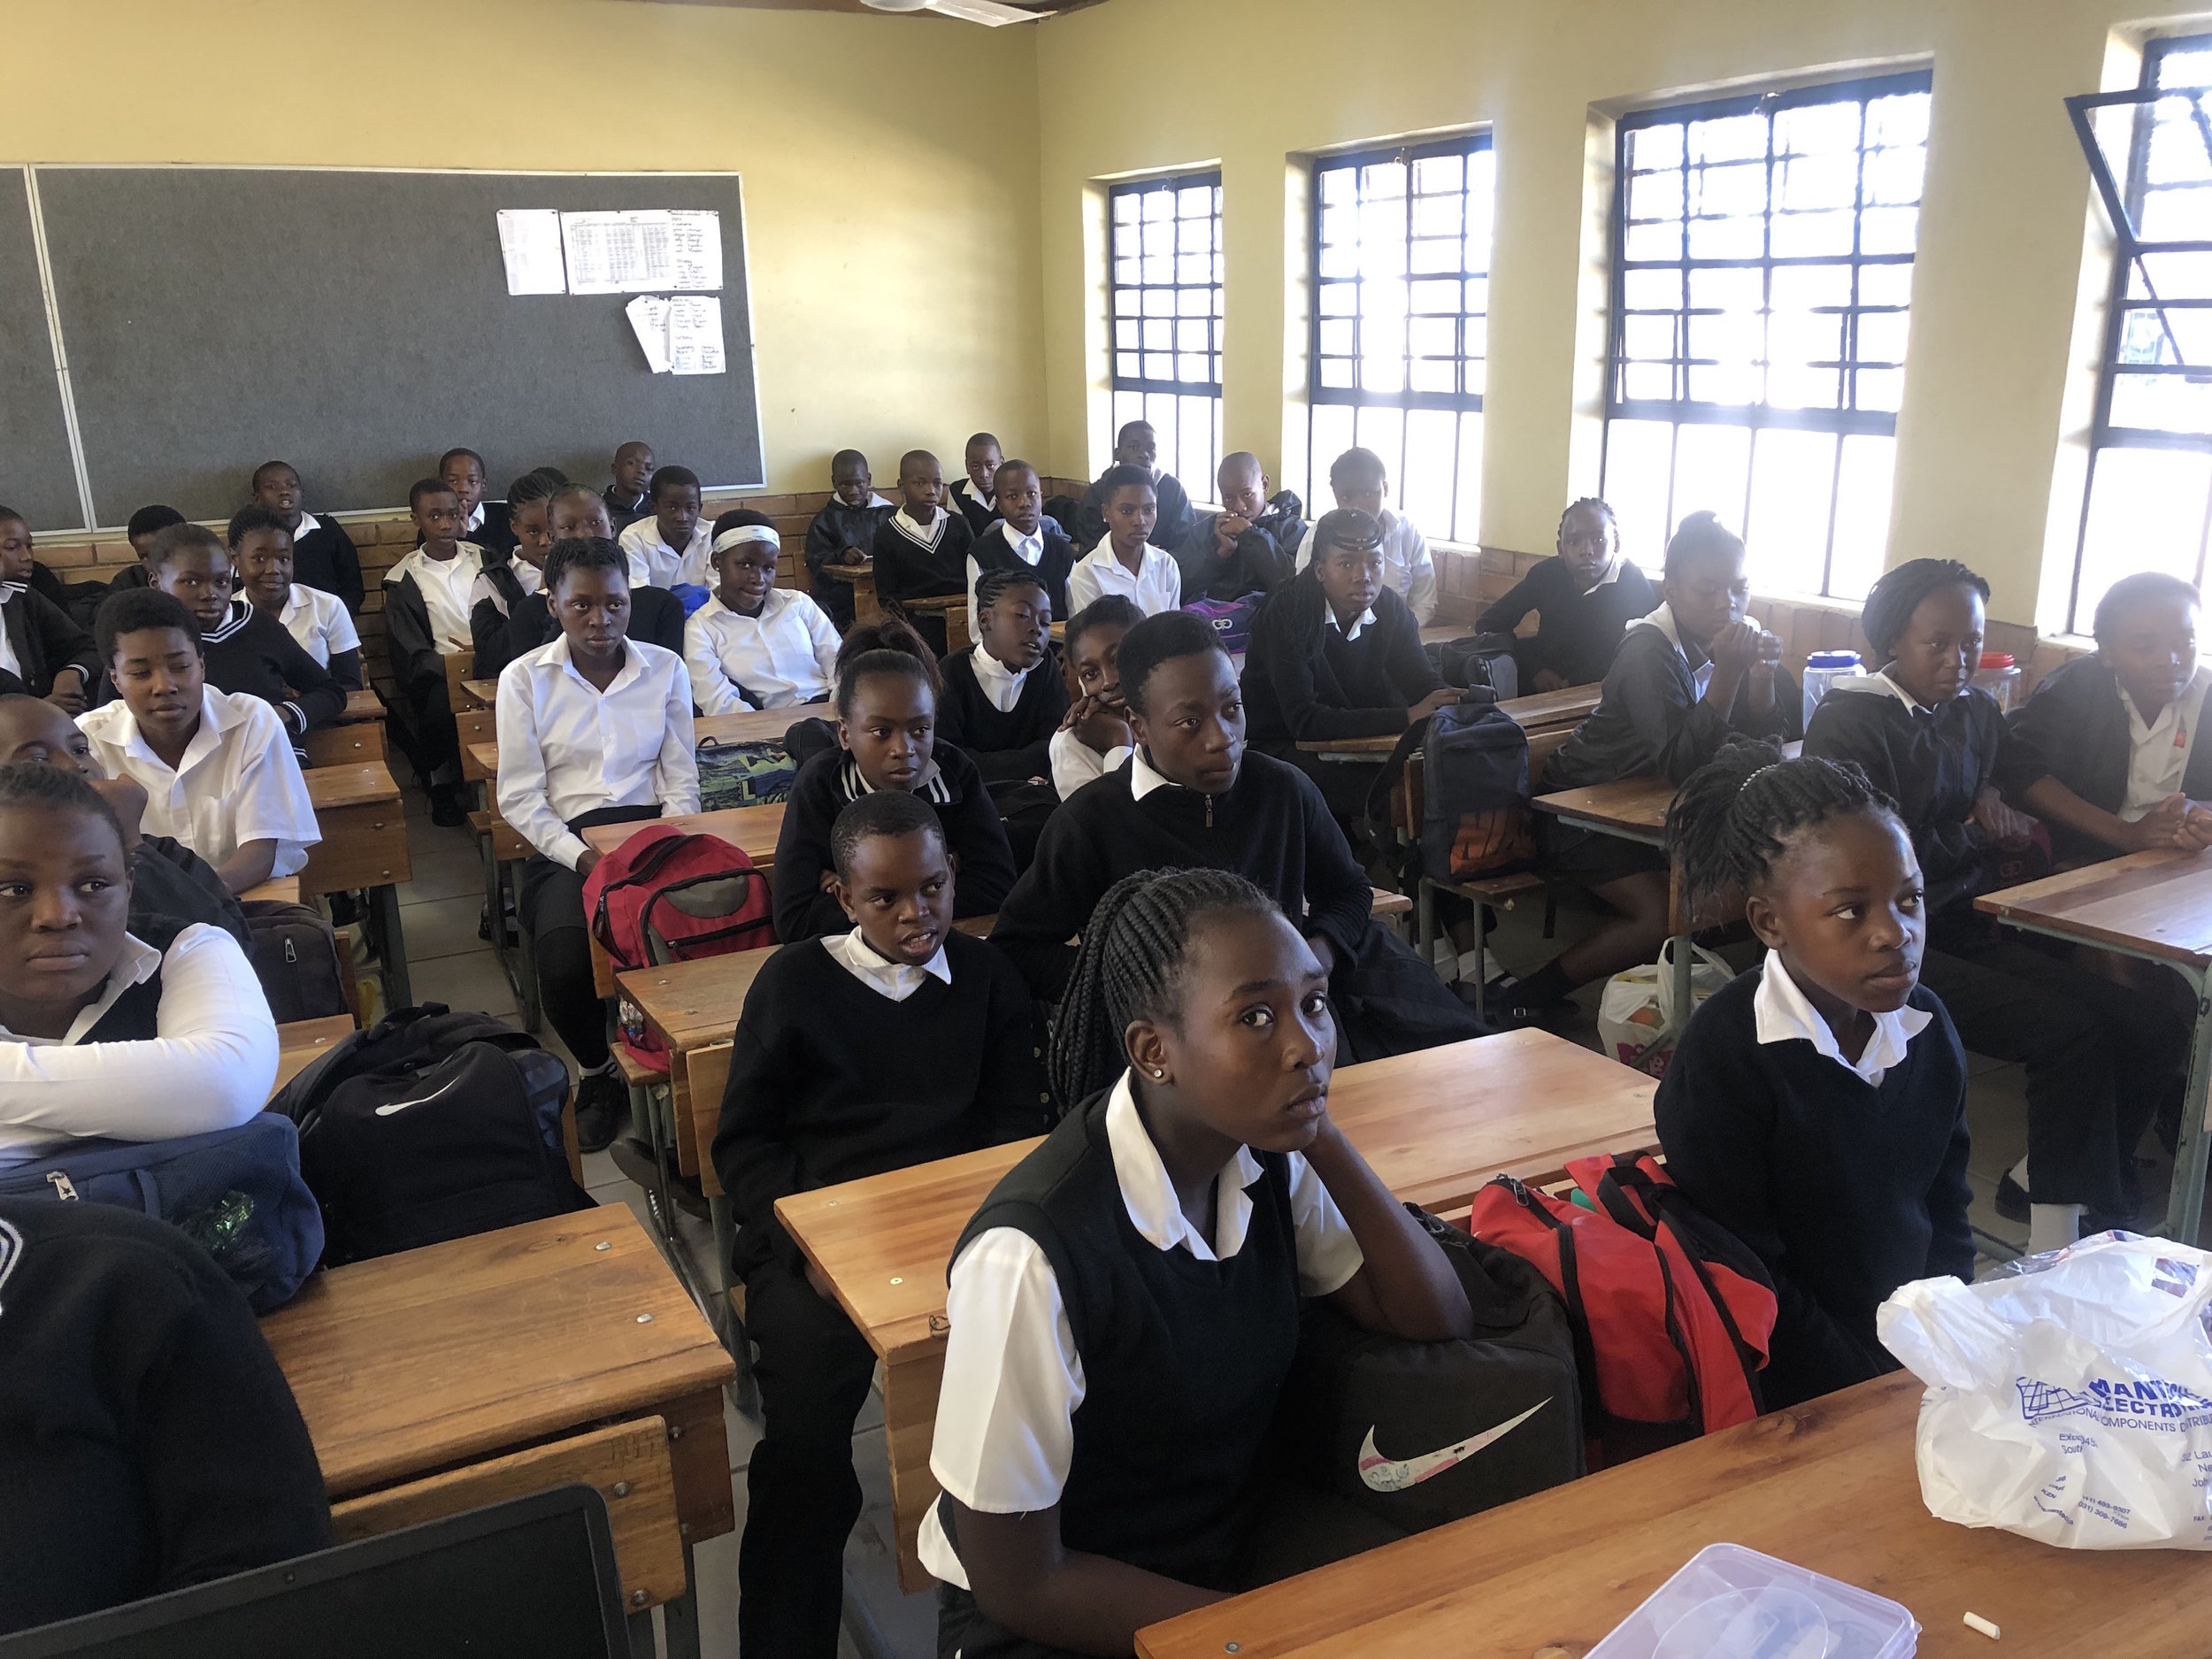 Maseke Primary School now has proper classrooms, as well as access to grid electricity and water from a dedicated borehole, yet there is still more to be done to raise standards to bring it in line with other primary schools in the country.